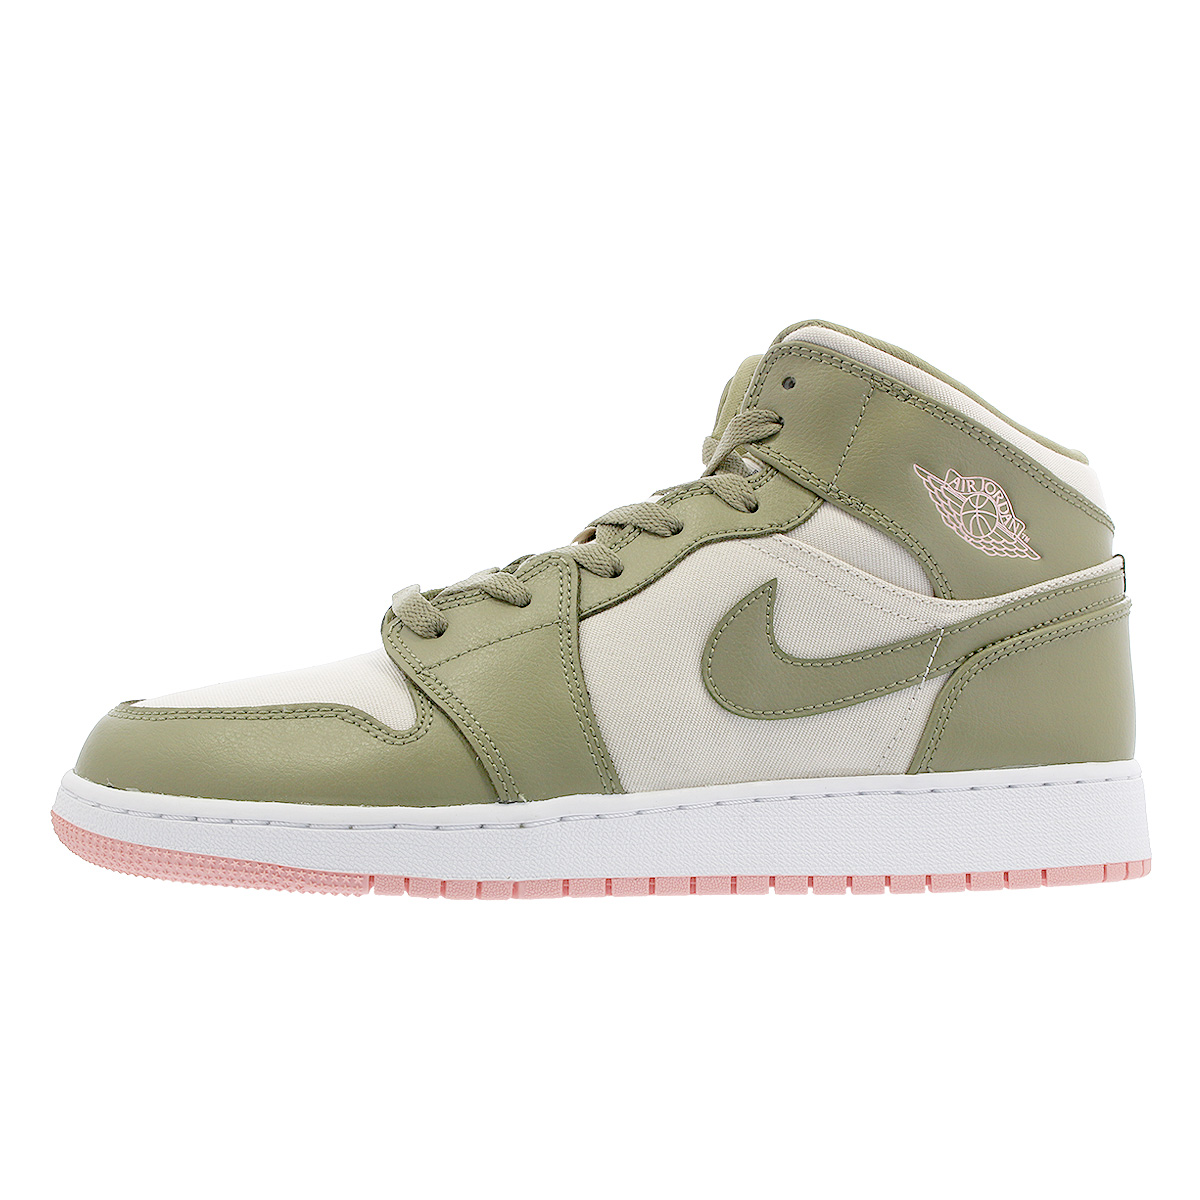 Nike Air Jordan 1 Mid Gg Nike Air Jordan 1 Mid Gg Trooper Bleached Coral Light Orewood Brown 555 112 225